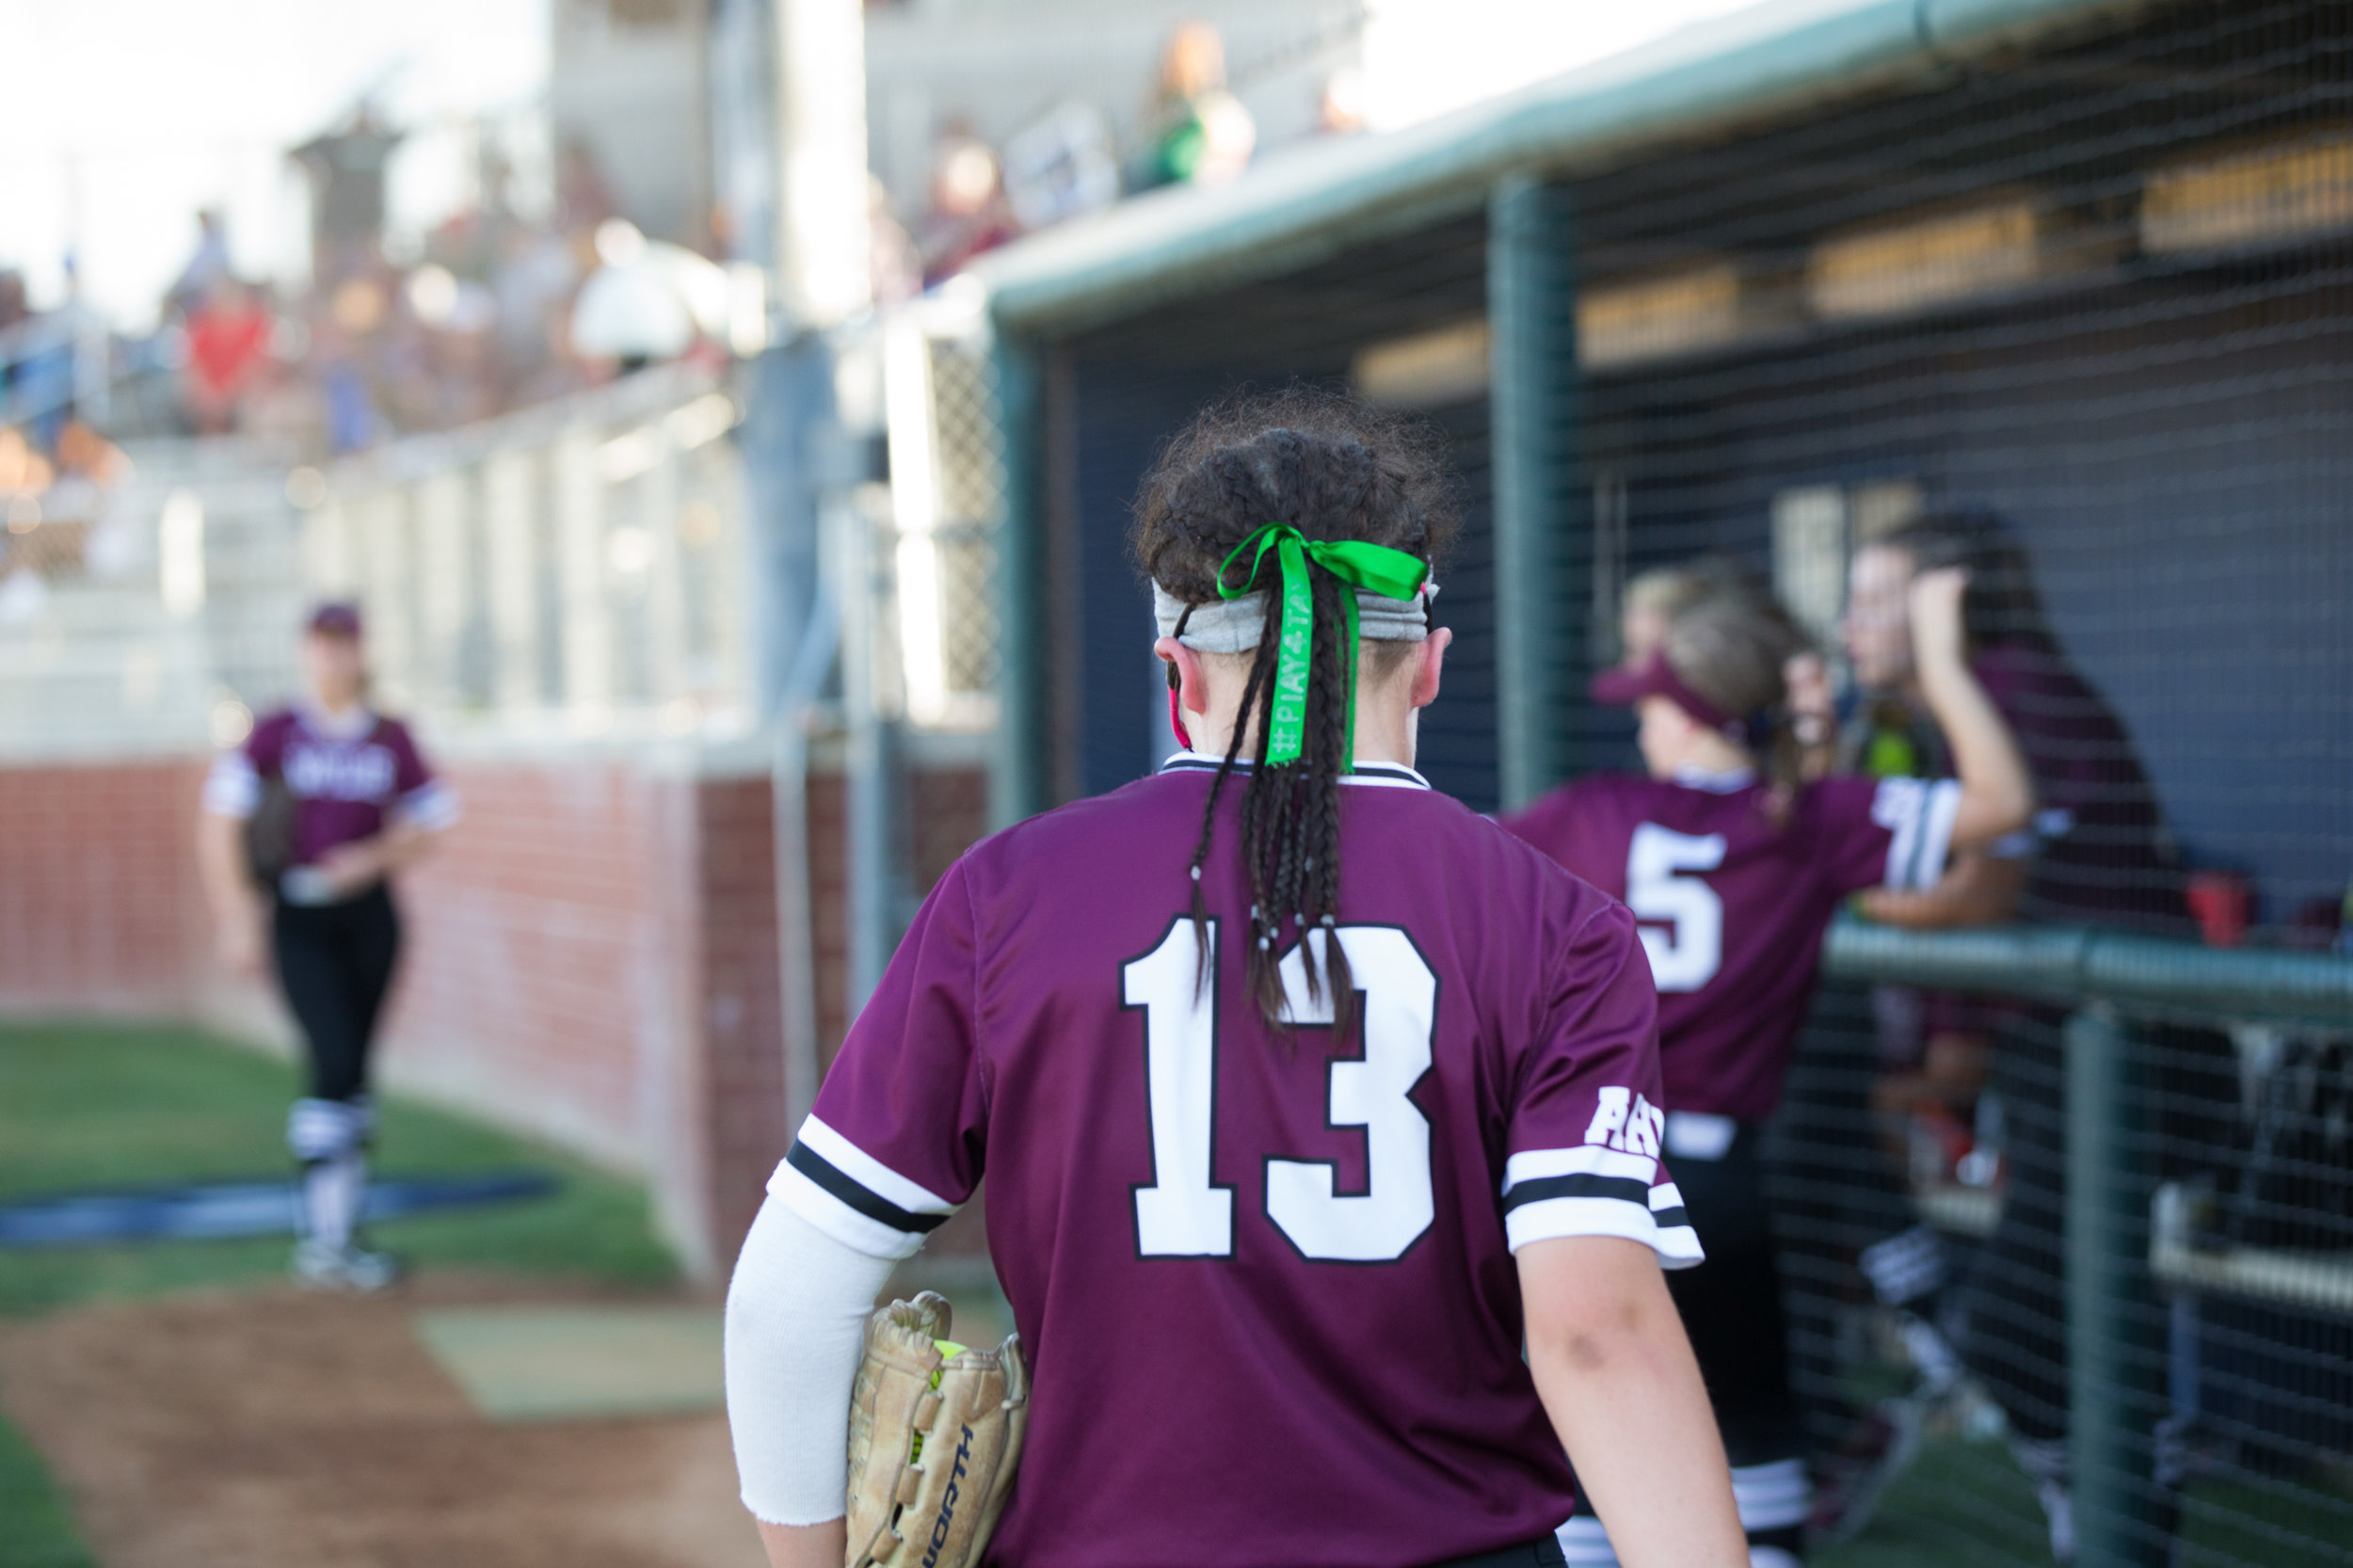 5_18 Wylie Softball-102.jpg